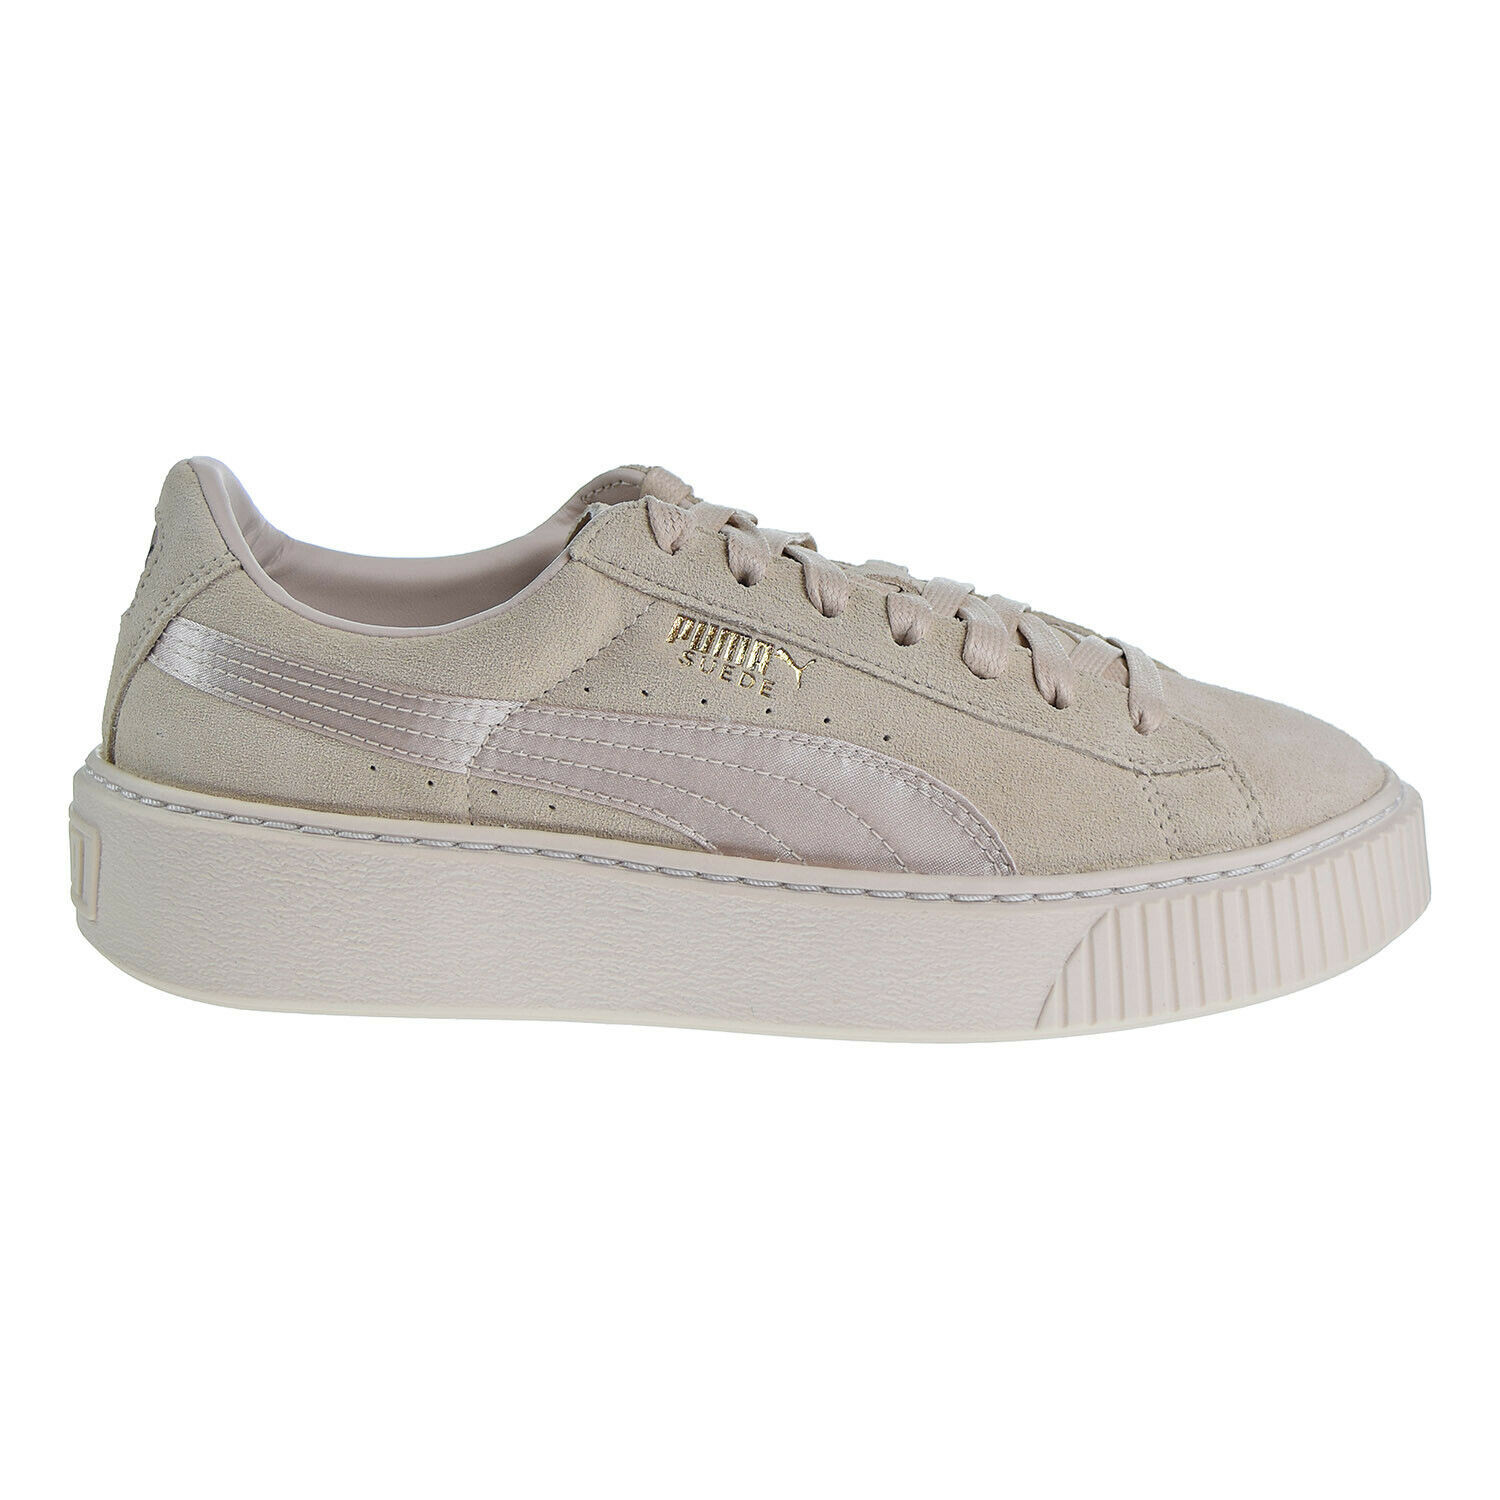 Sneakers Pink Tint-White-Gold 365828-02